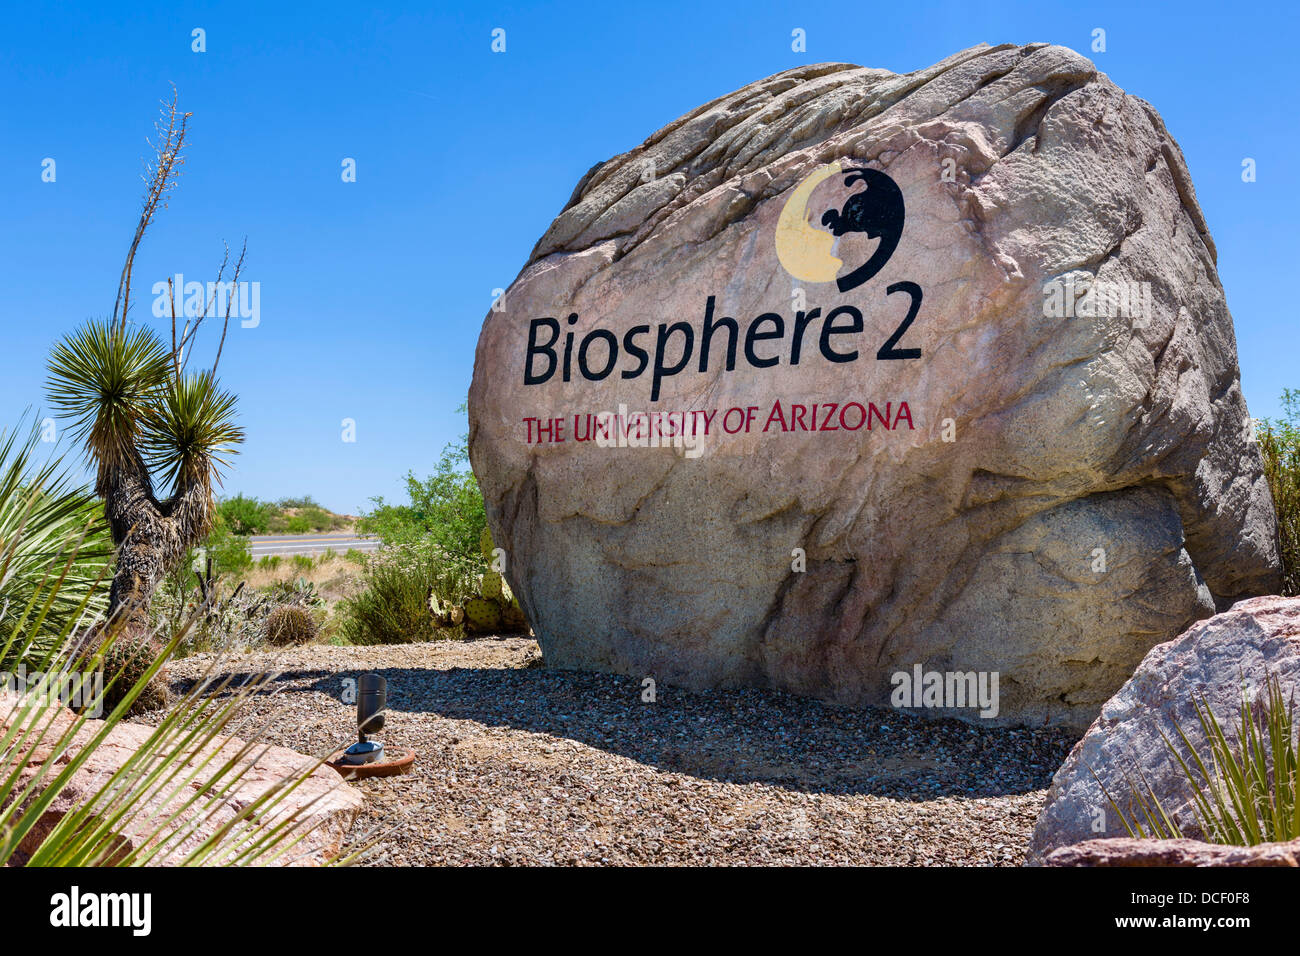 Entrance sign on road to Biosphere 2 Earth Systems Science Research Facility, Oracle, near Tucson, Arizona, USA - Stock Image